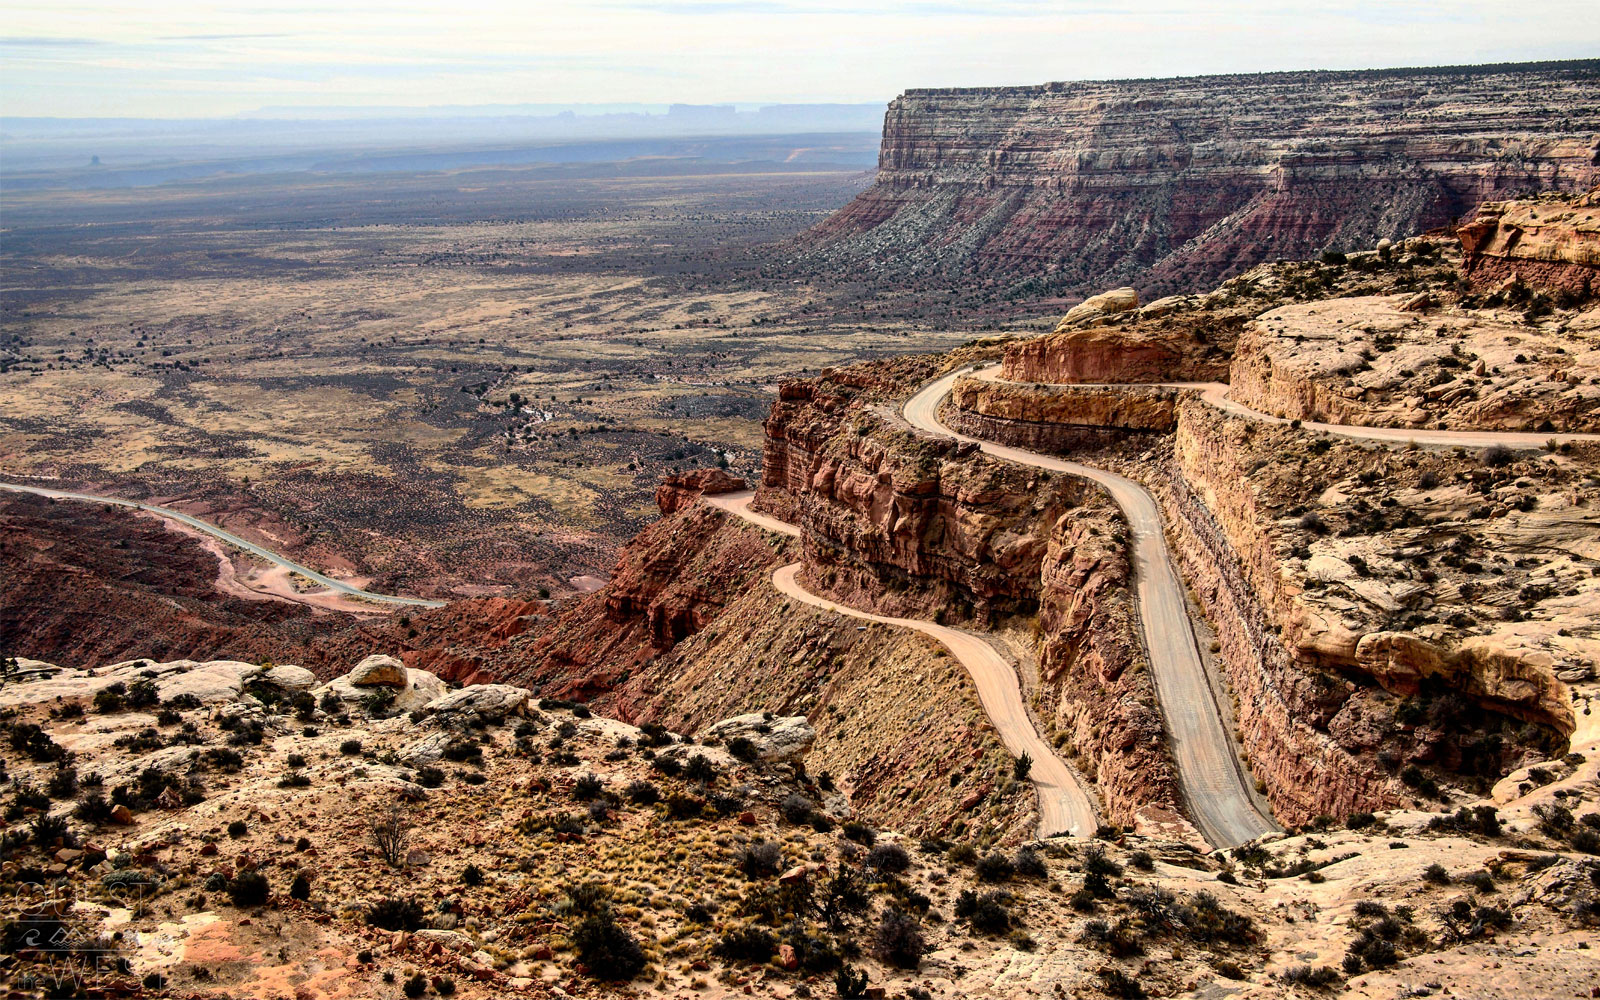 "The Moki Dugway, which is located at the western end of the Valley of the Gods road, a graded dirt switchback road carved into the edge of Cedar Mesa.                               The unpaved and steep roads can be dangerous and should be approached with caution, but many tourists brave the drive for the end result. From the top, visitors are treated to sweeping views over the Valley of the Gods (famous for its buttes and towering pinnacles) and Monument Valley in the distance.                               ""You get an amazing 180-degree view of the entire valley that's just filled with red and orange rock formations throughout,"" Paquette recalled."